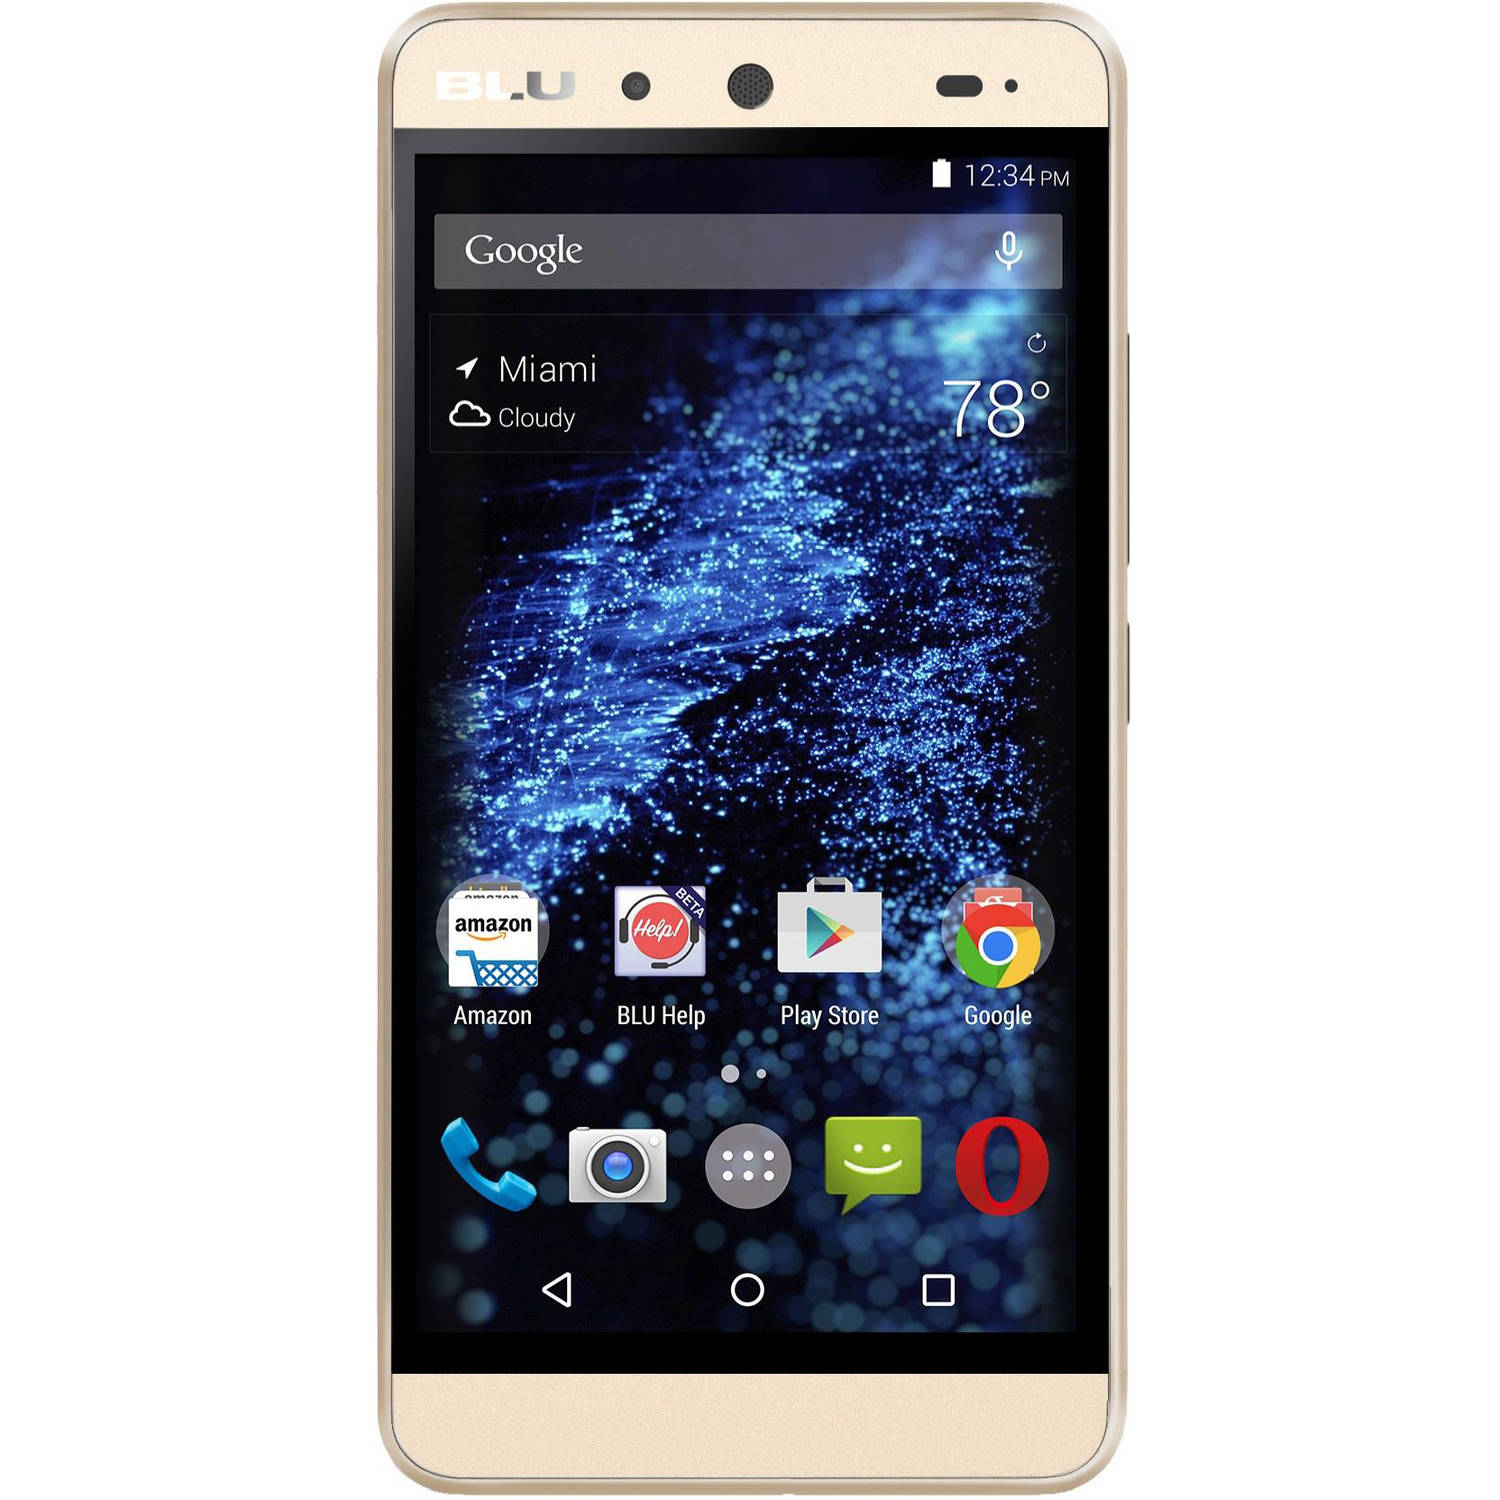 BLU Energy X E010Q 8GB GSM Android Quad-Core Smartphone (Unlocked)